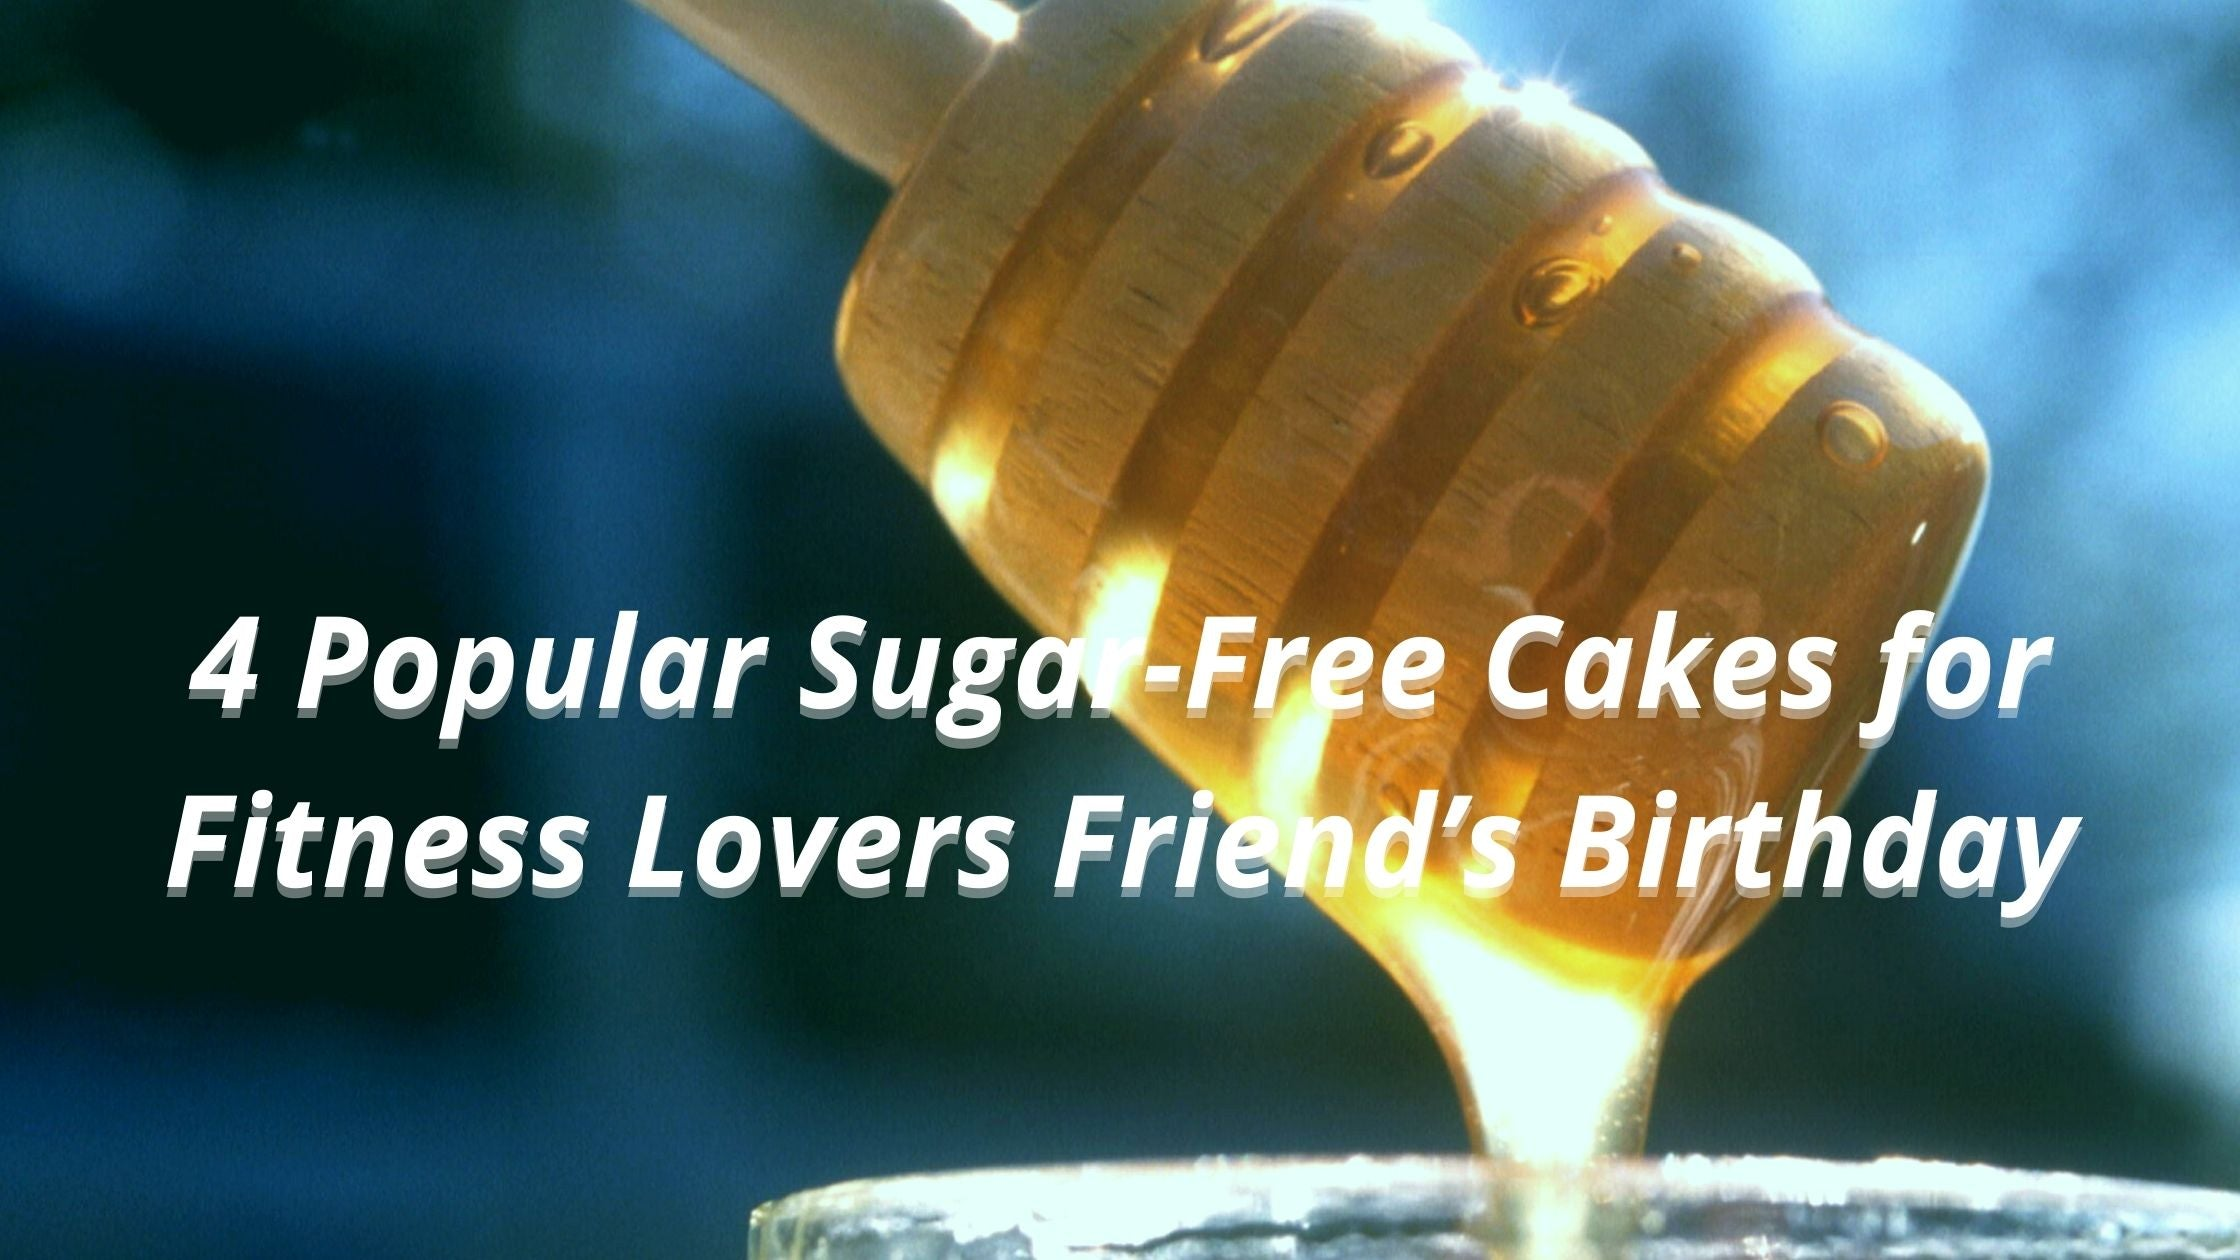 4 Popular Sugar-Free Cakes for Fitness Lovers Friend's Birthday